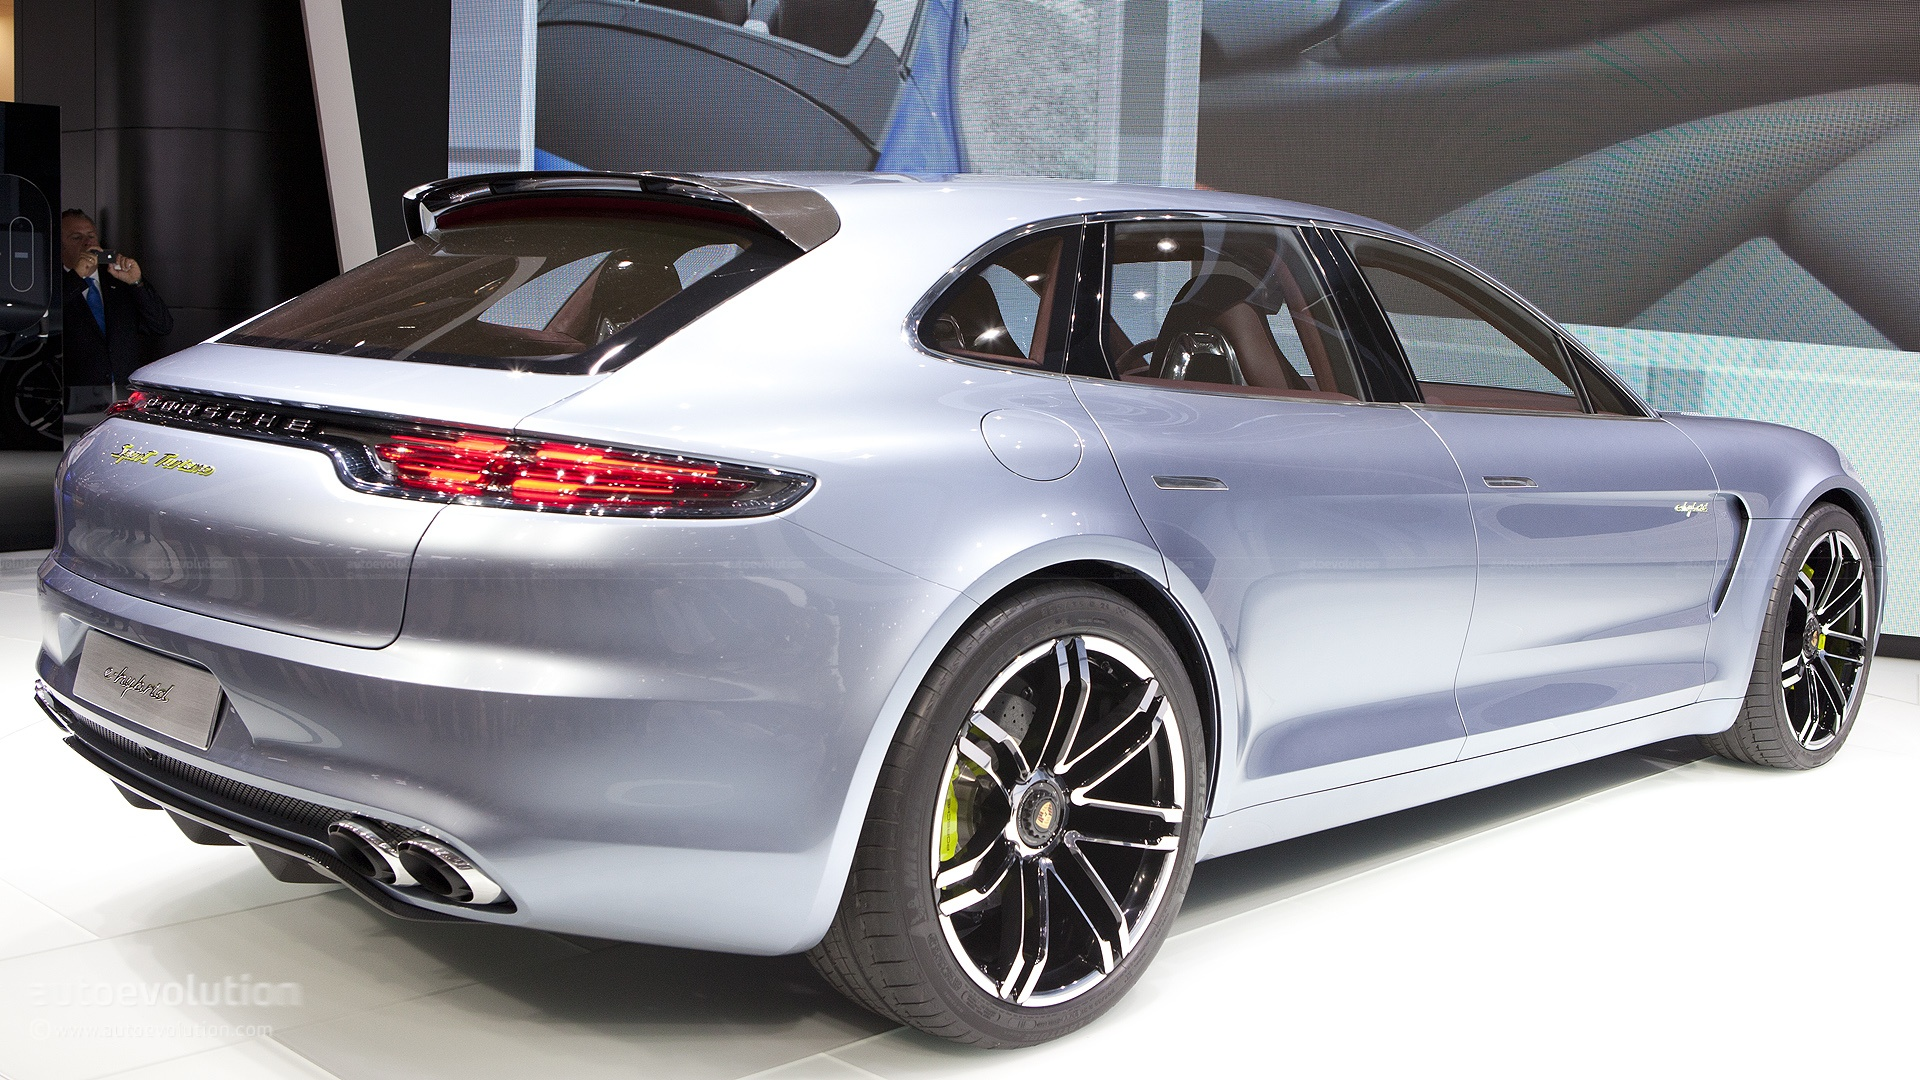 Paris 2012 Porsche Panamera Sport Turismo Shooting Brake